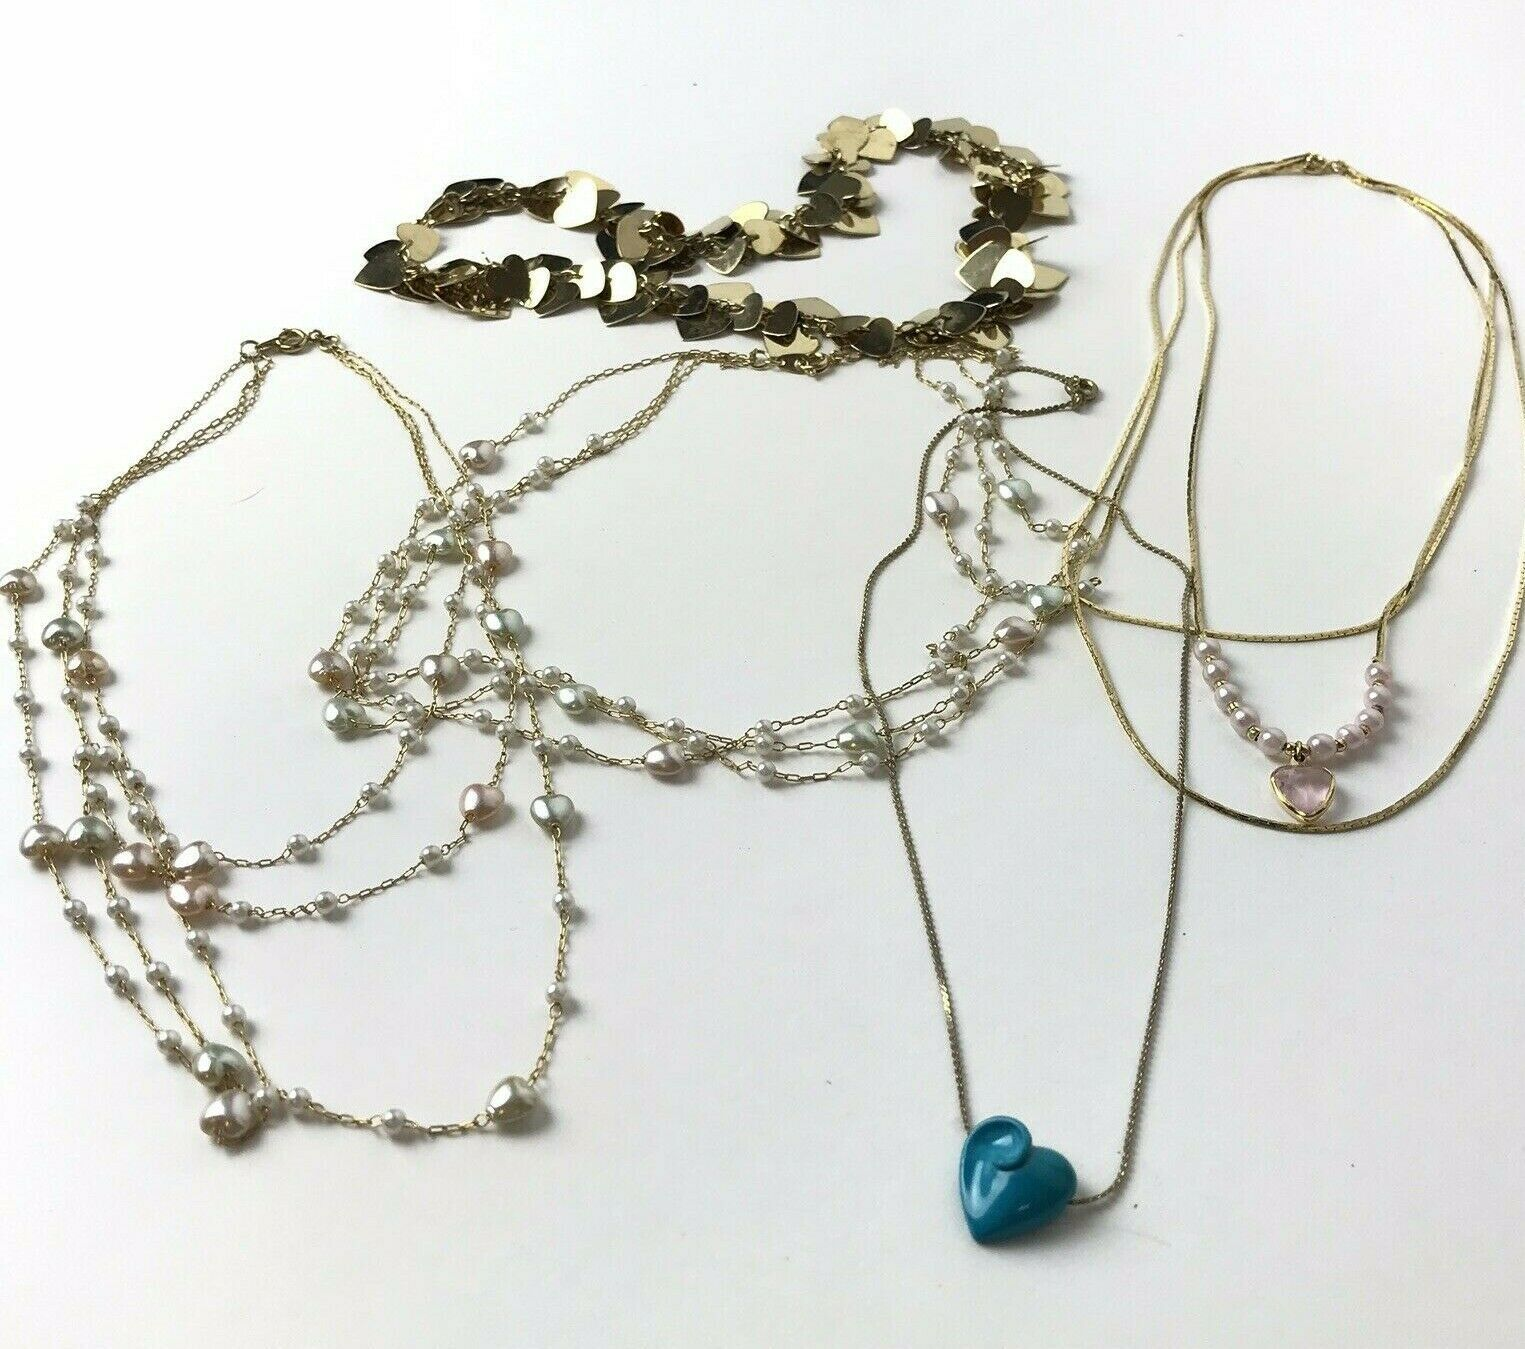 90s heart necklace lot of 5 vintage dainty small light weight necklaces